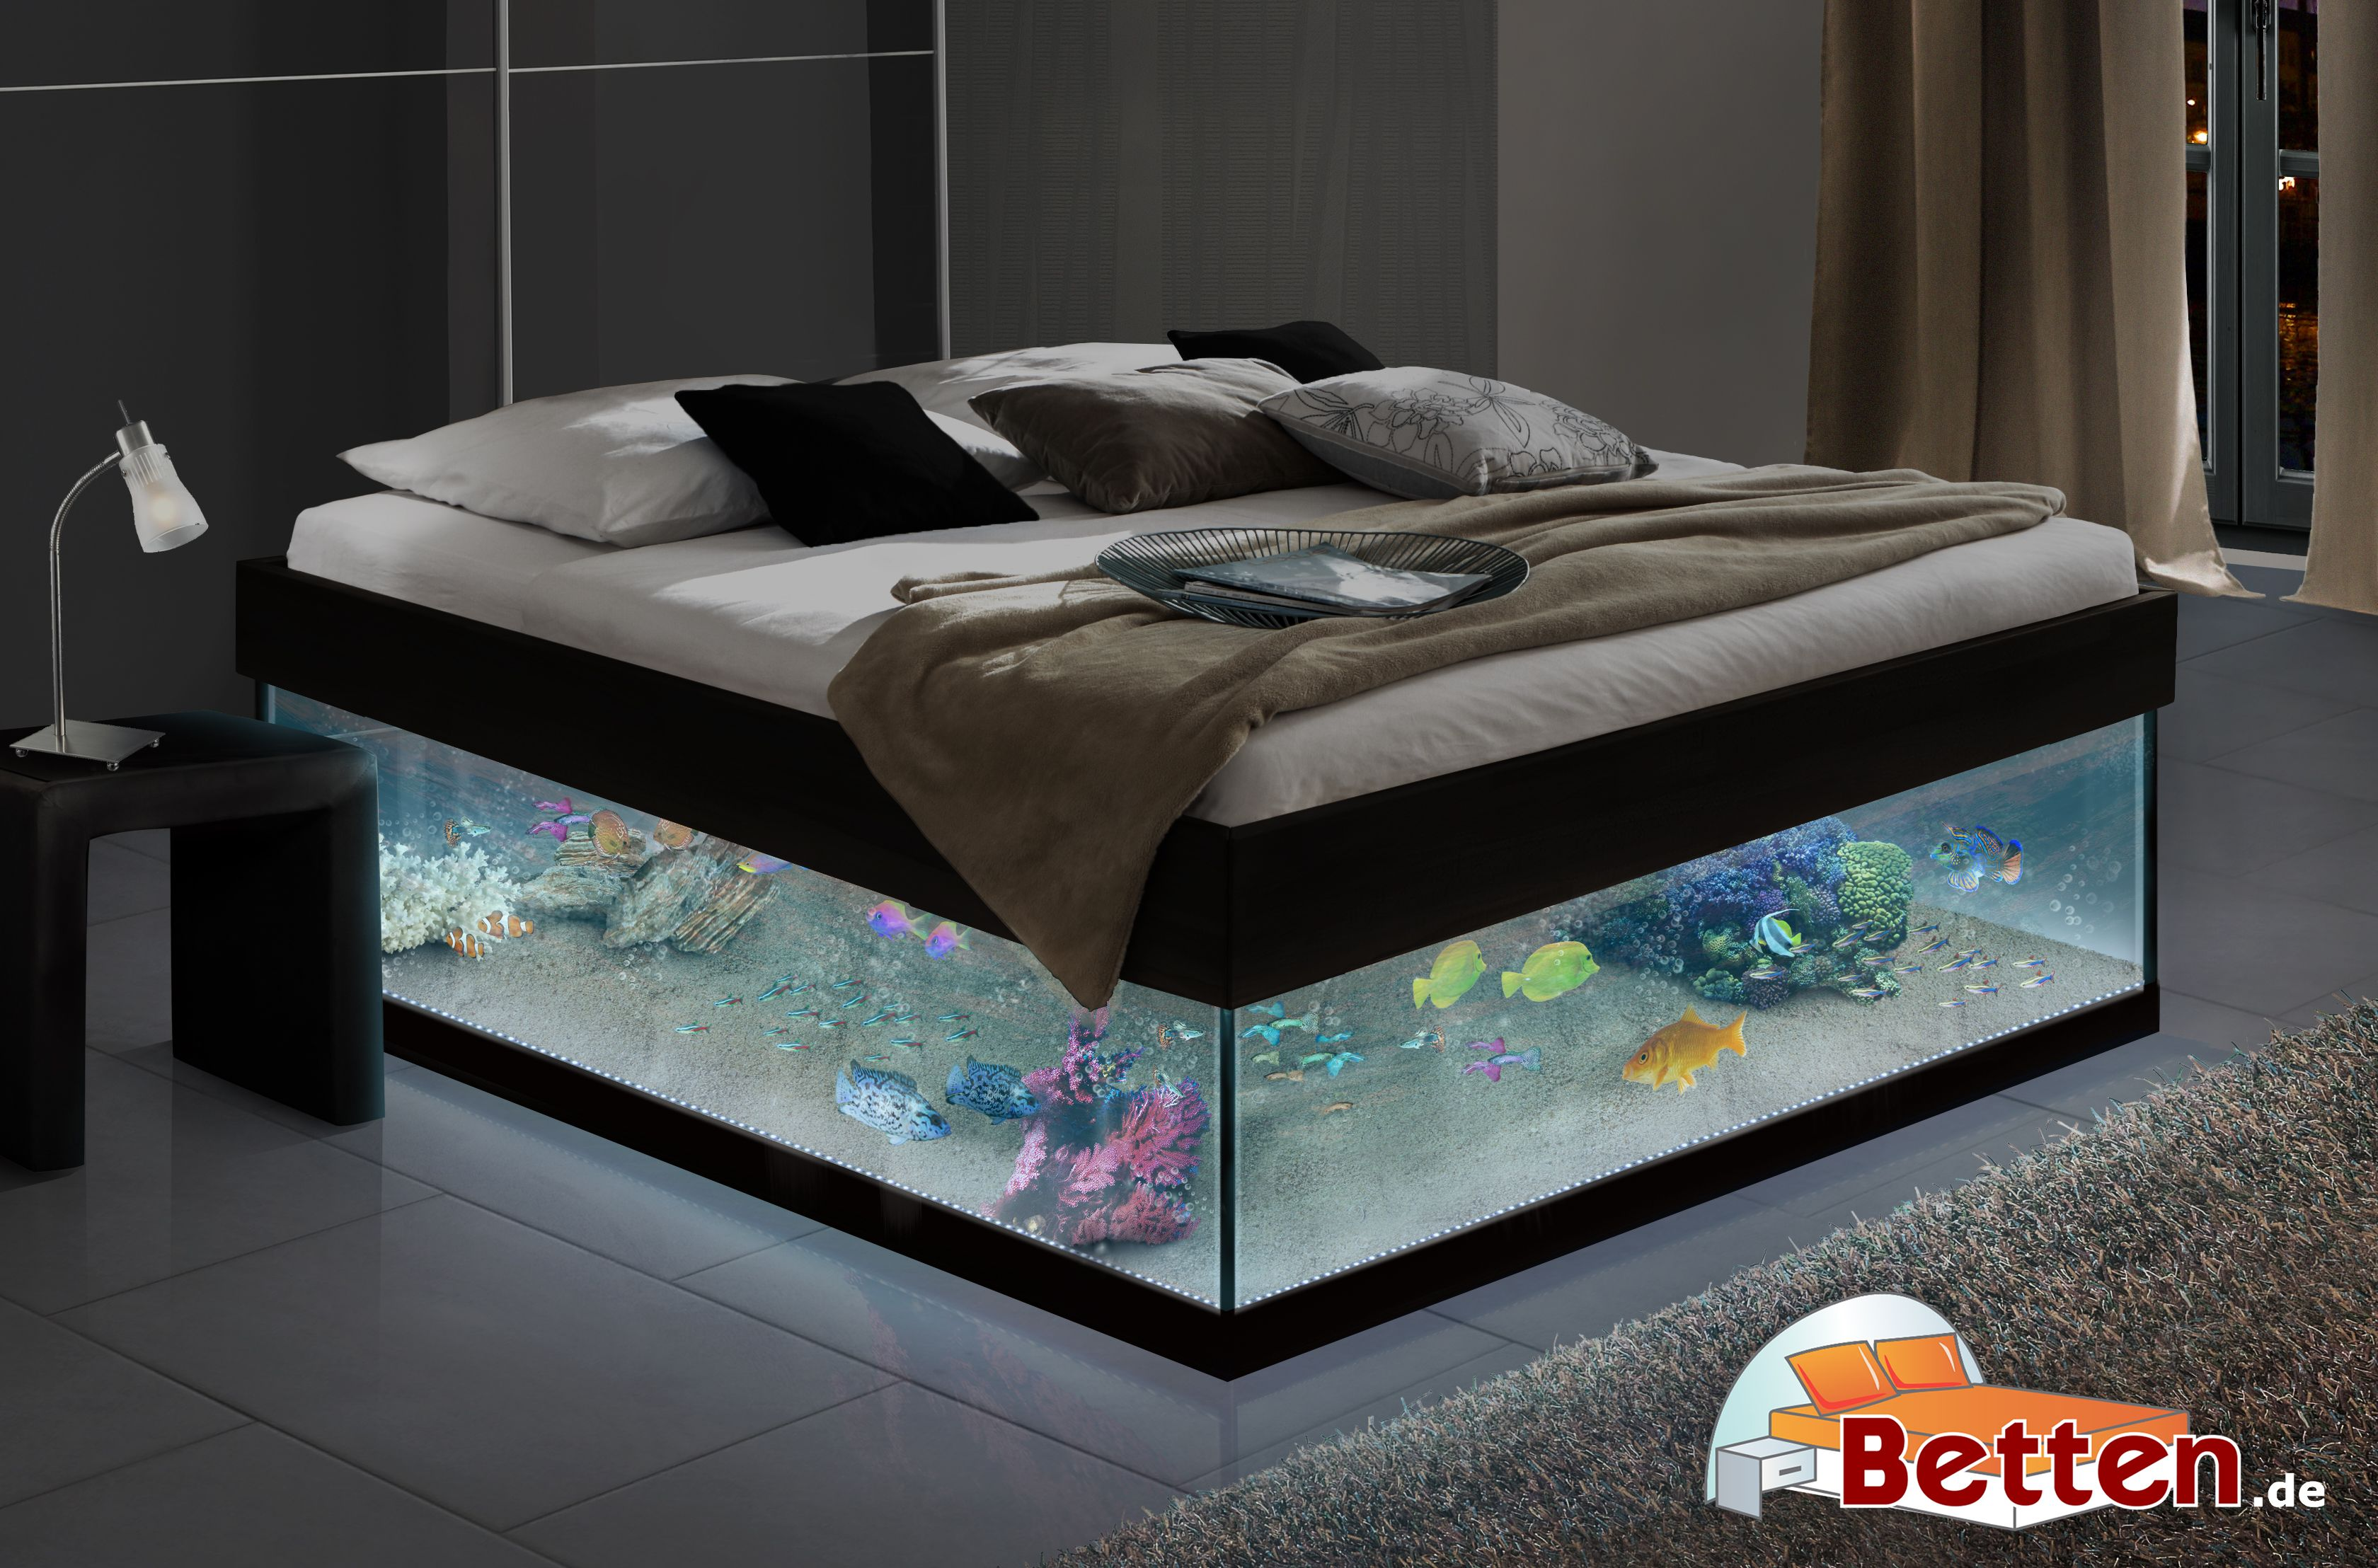 leuchtendes aquariumbett au ergew hnliche. Black Bedroom Furniture Sets. Home Design Ideas